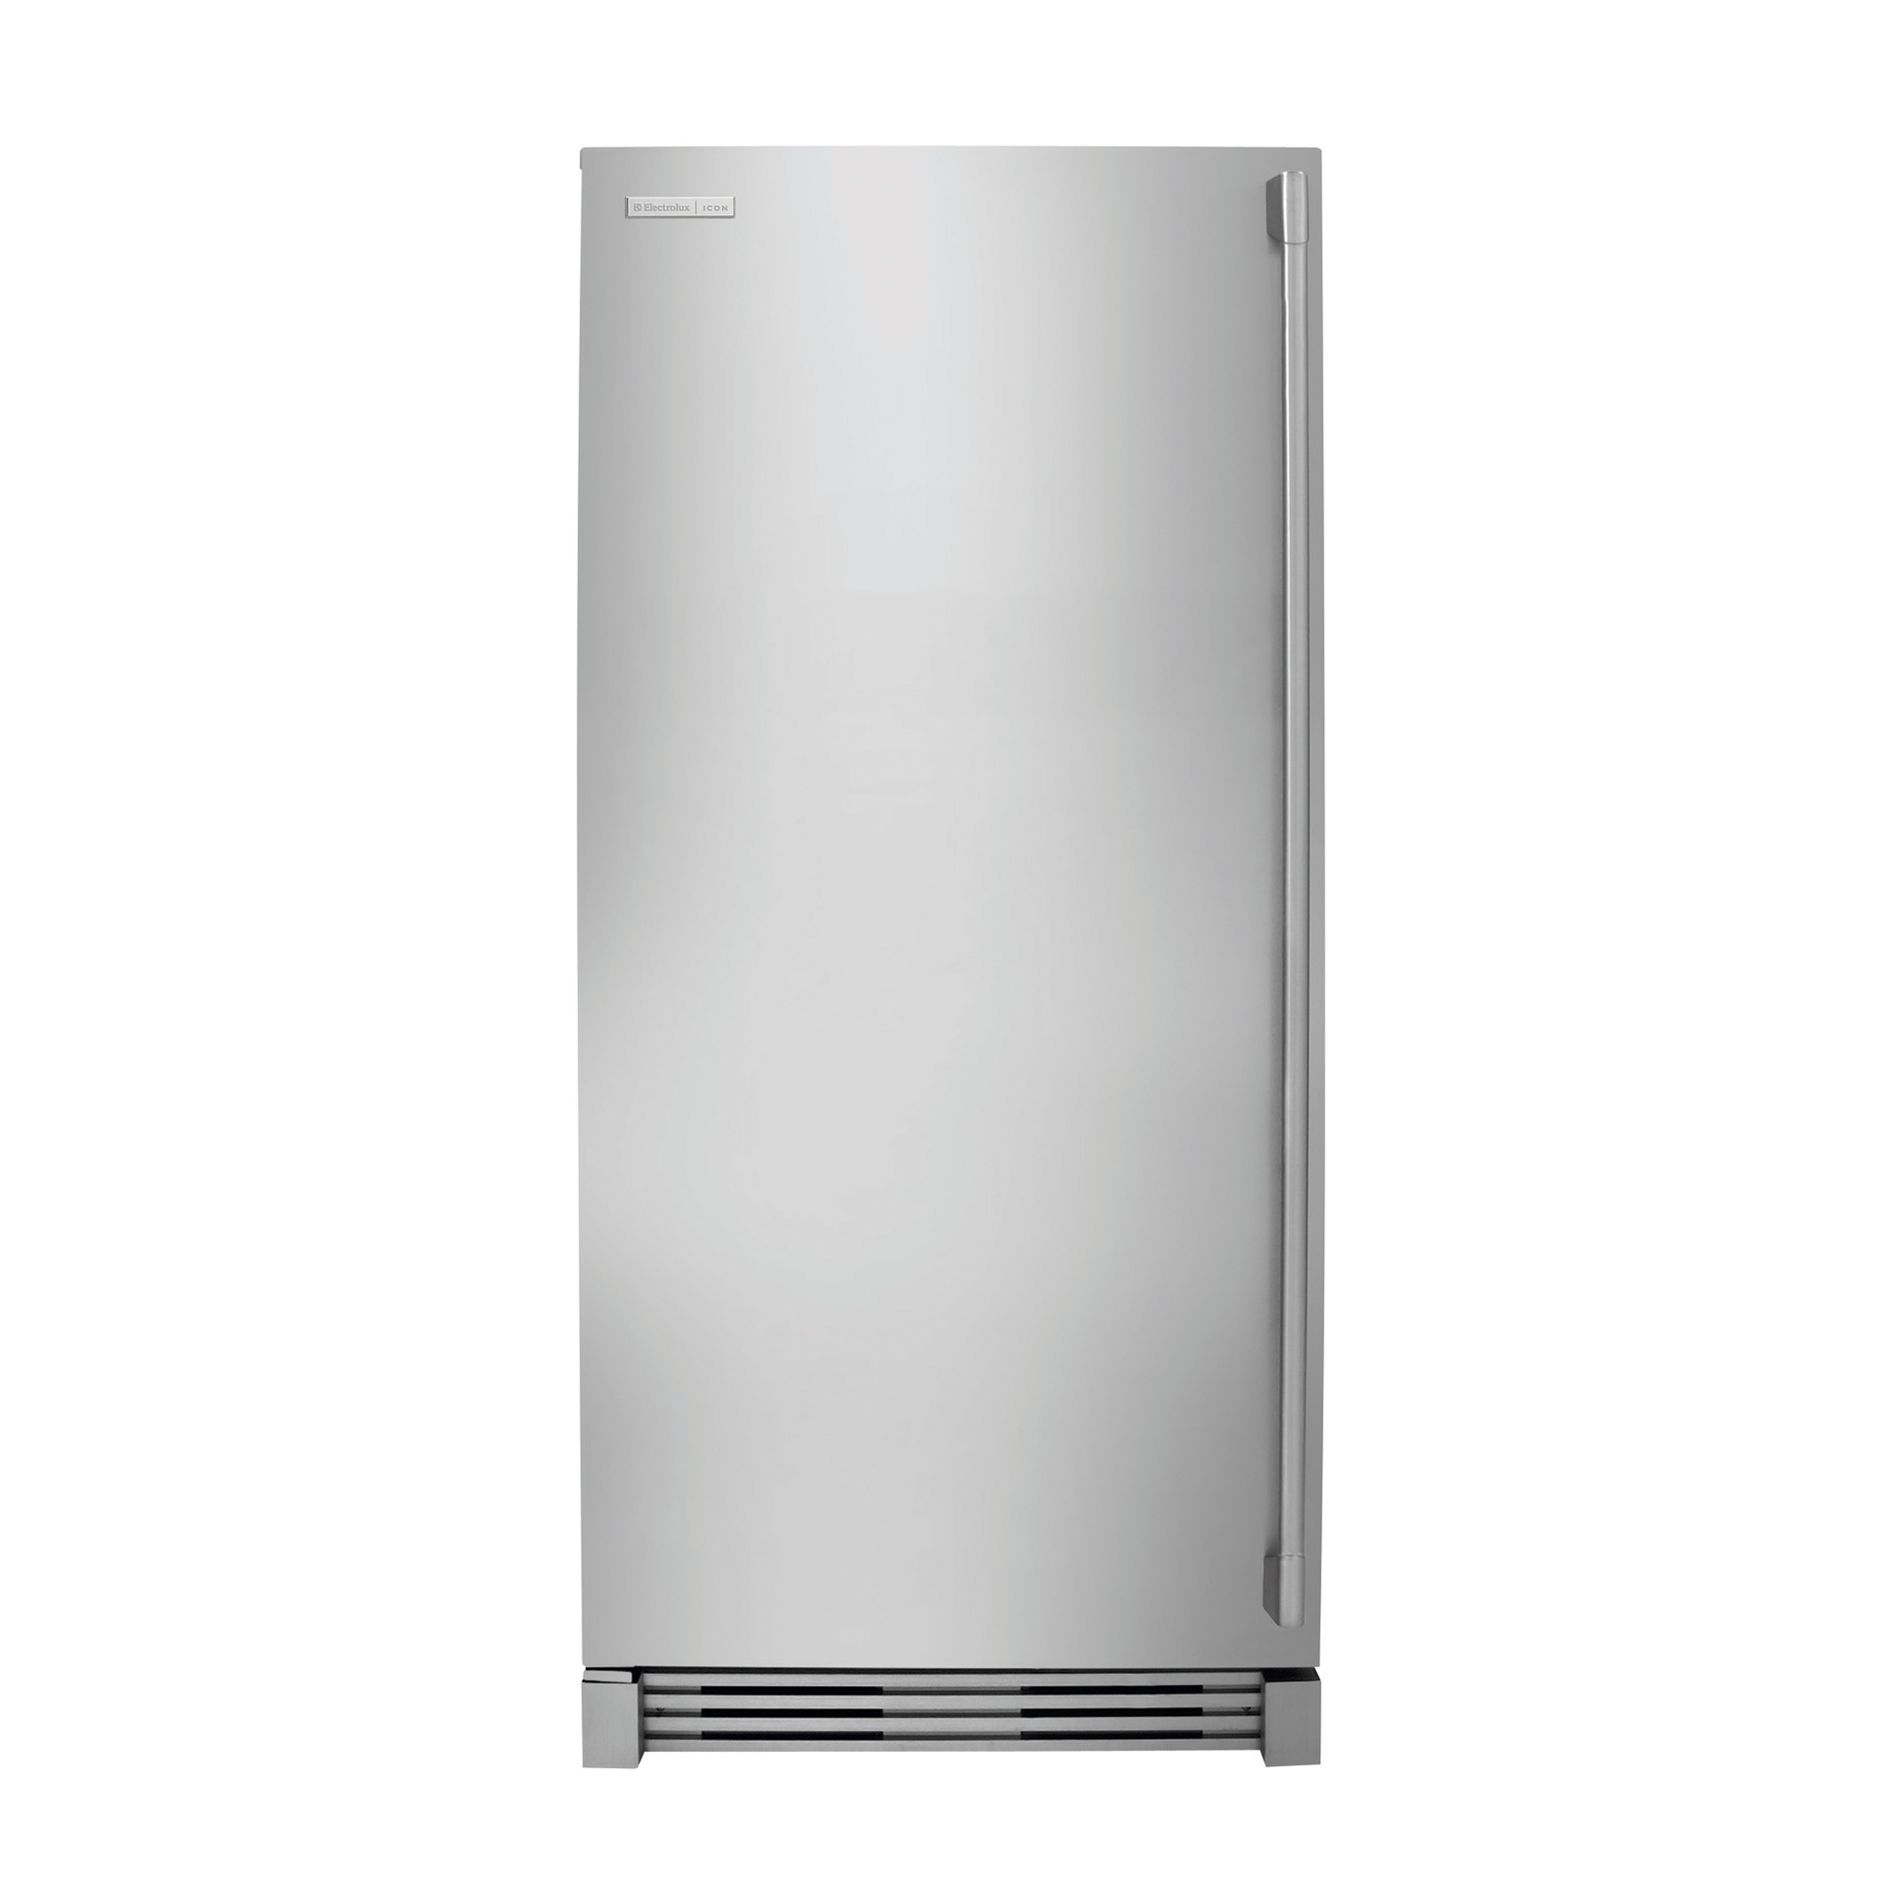 18.6 cu. ft. Built-in All Freezer - Stainless Steel                                                                              at mygofer.com